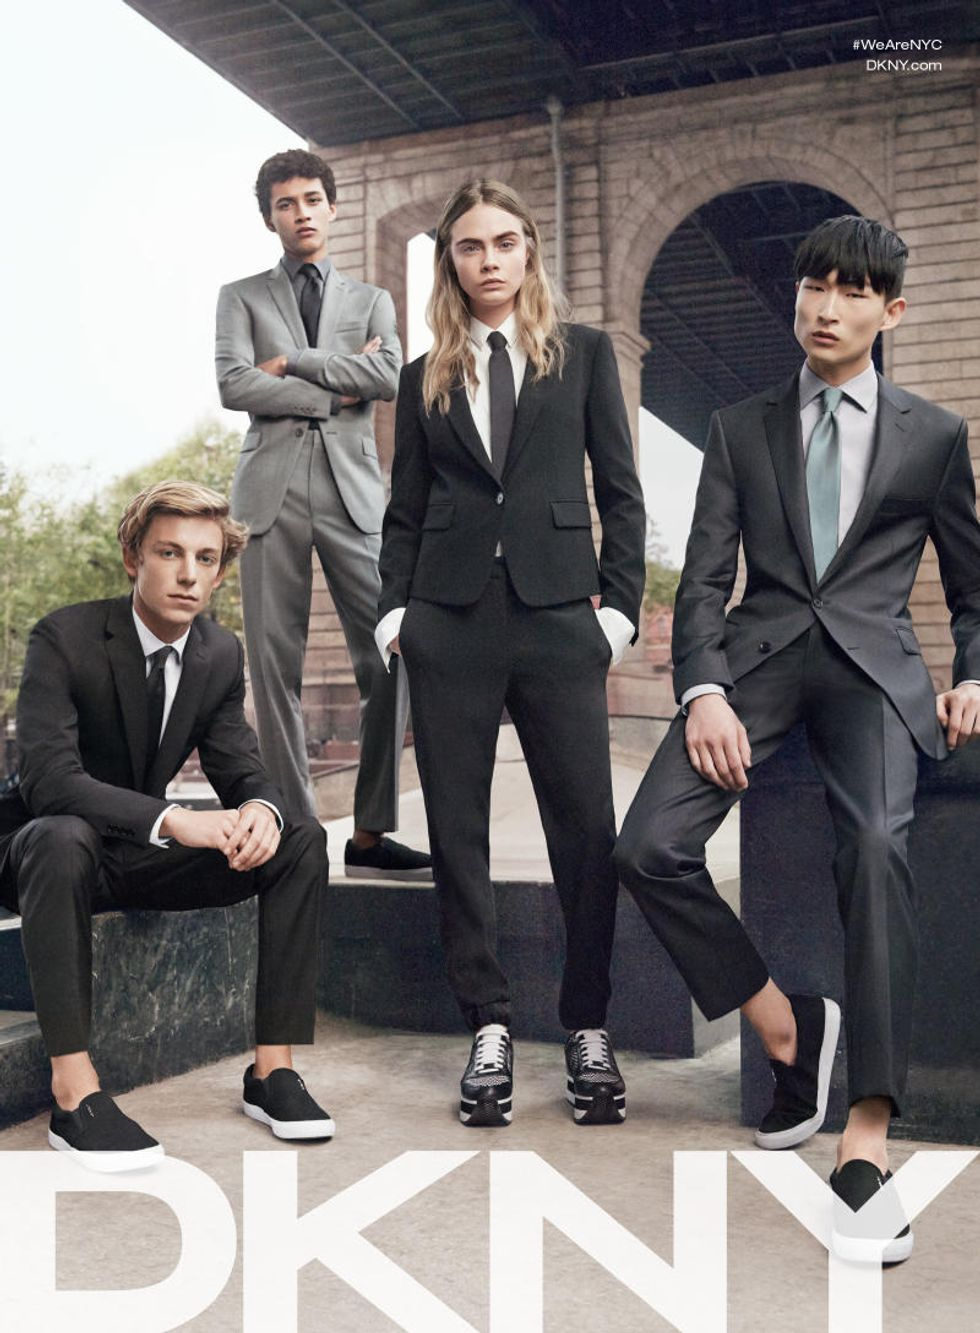 Cara Delevingne Ditches Her Girl Crew for the Boys in New DKNY Campaign